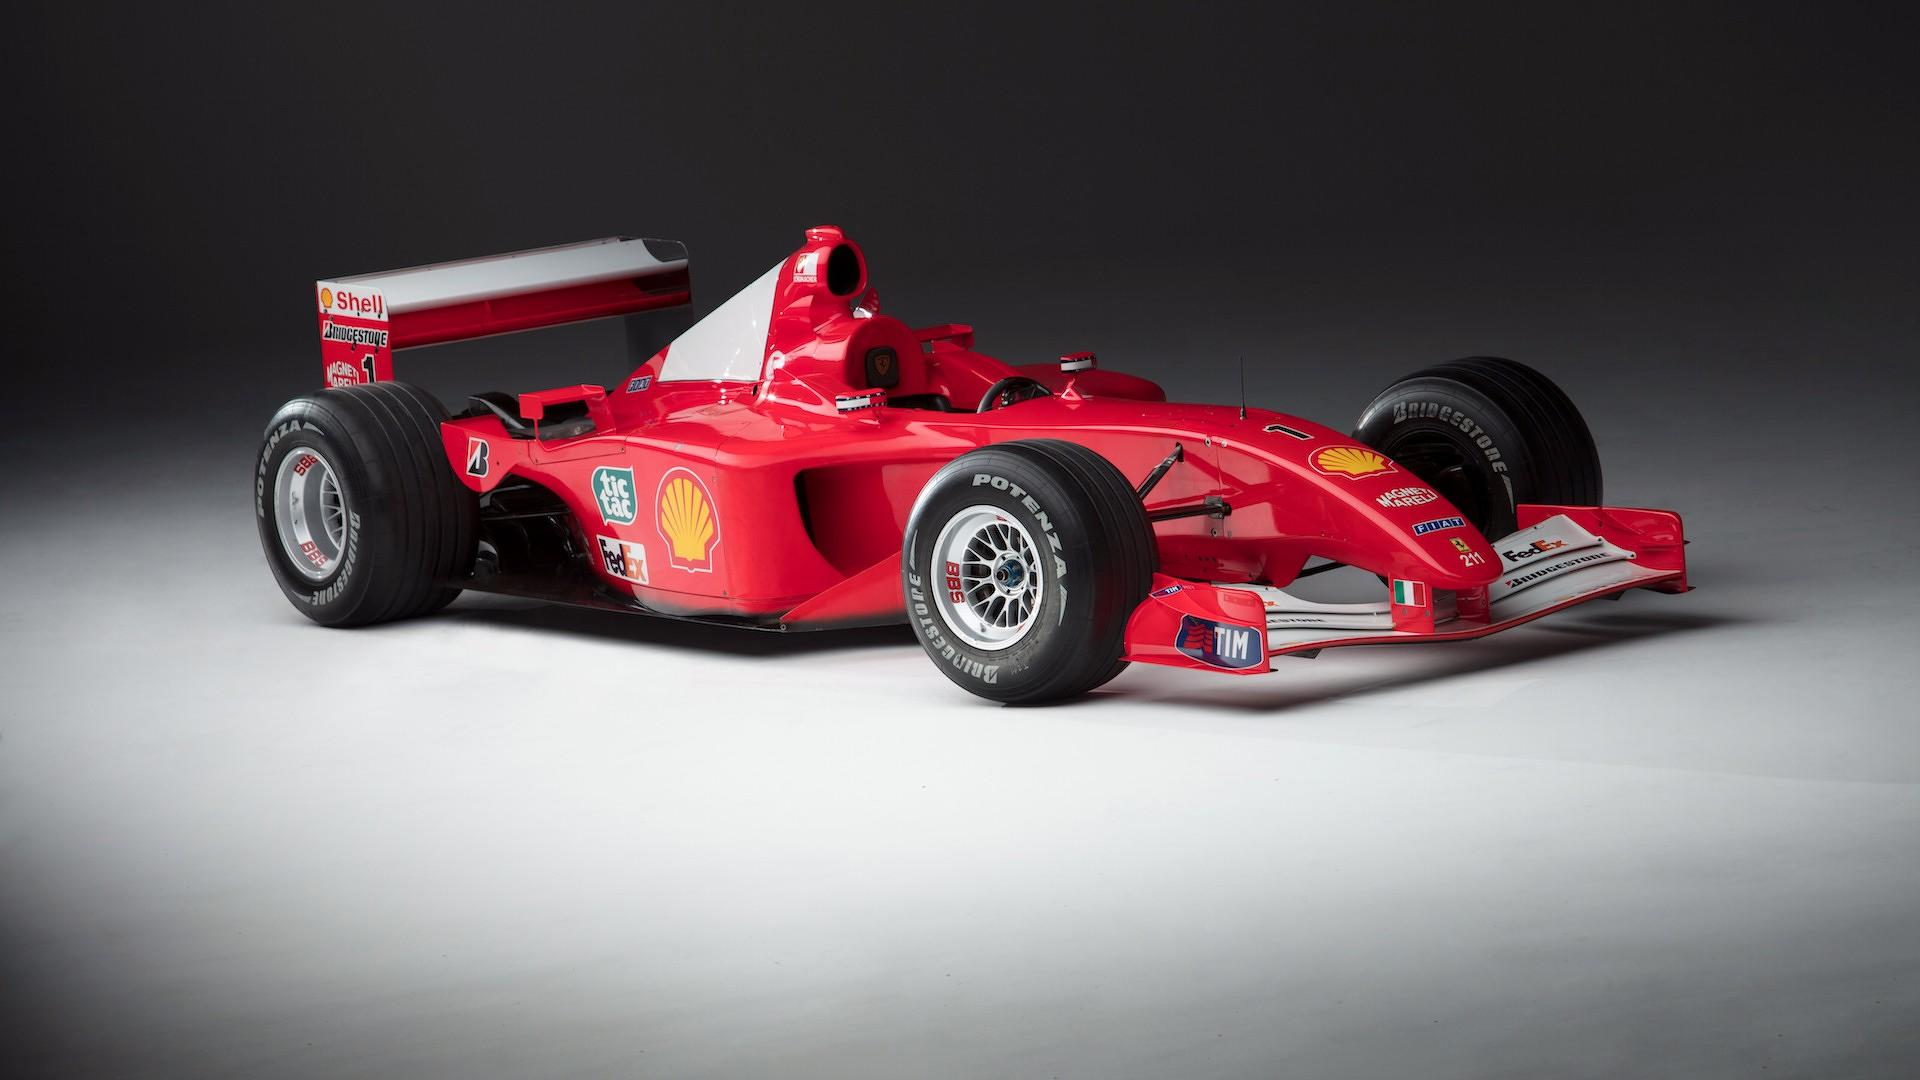 Schumacher S Coveted Ferrari F1 Car Auctioned For 7 5m Update